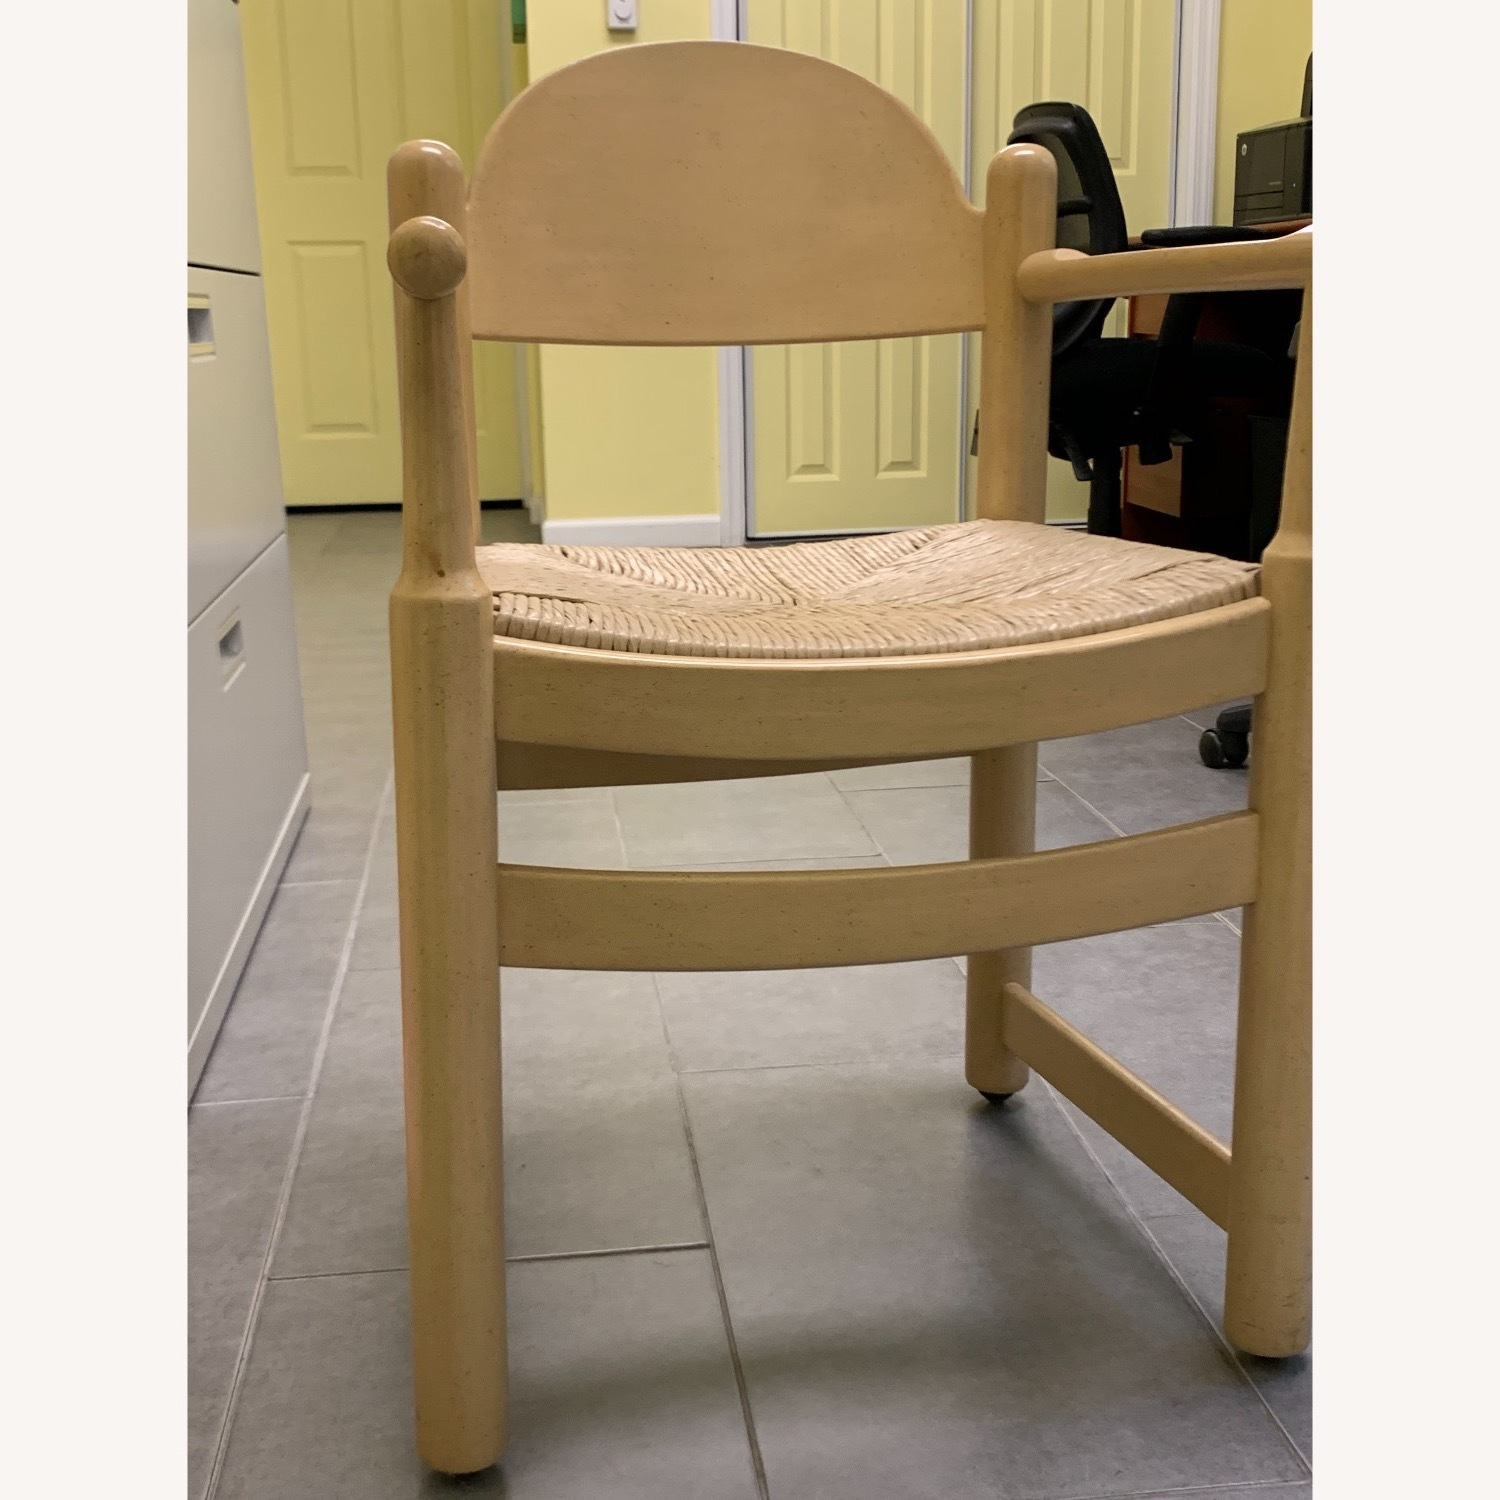 2 Blonde Wood Chairs with Rattan seat - image-1